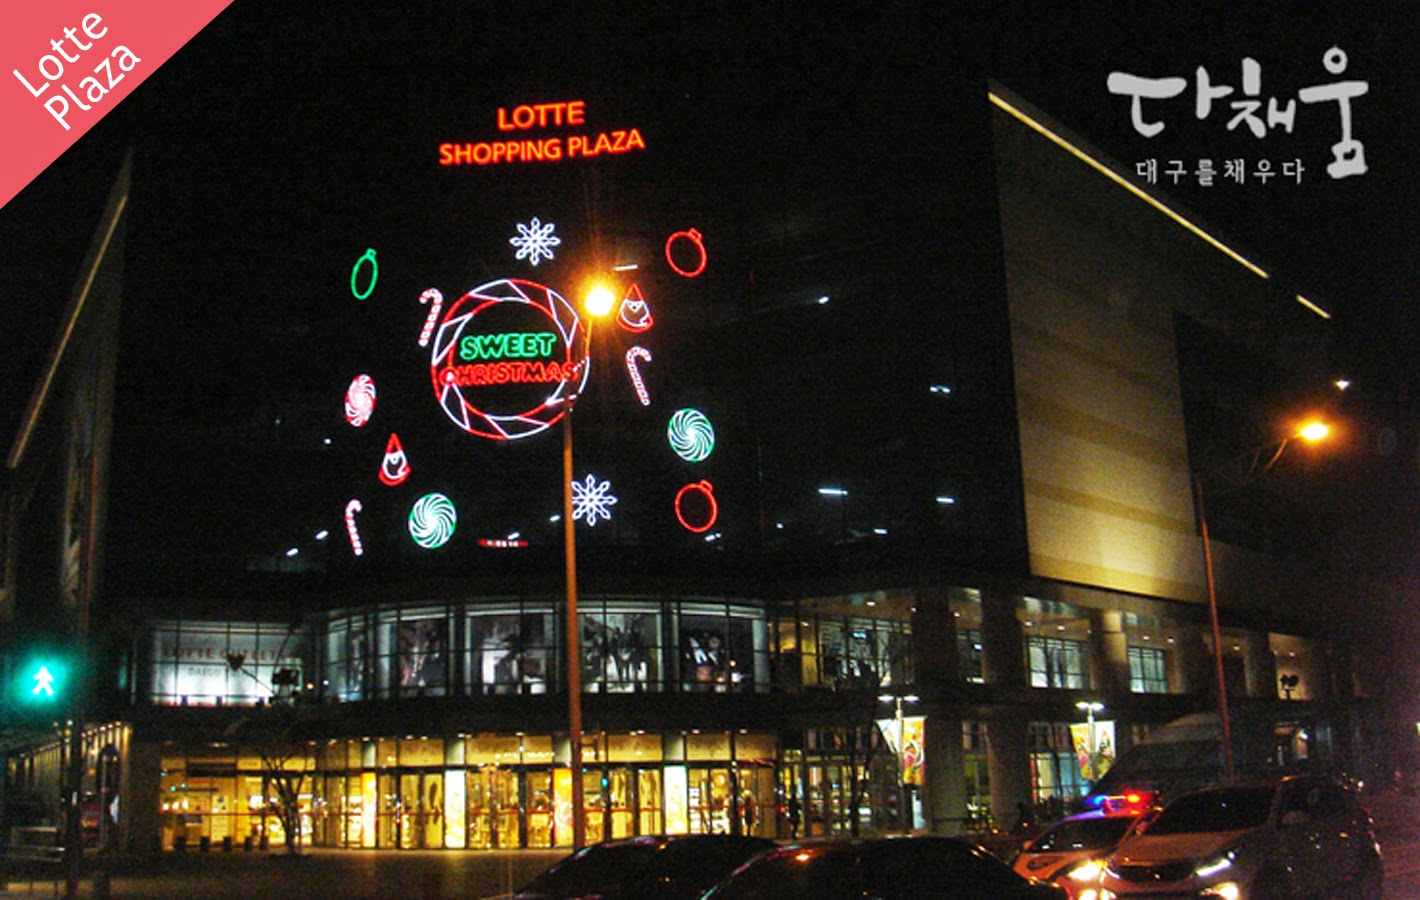 Shopping Areas in Daegu-Lotte Shopping Plaza in Yulha, Dong-gu